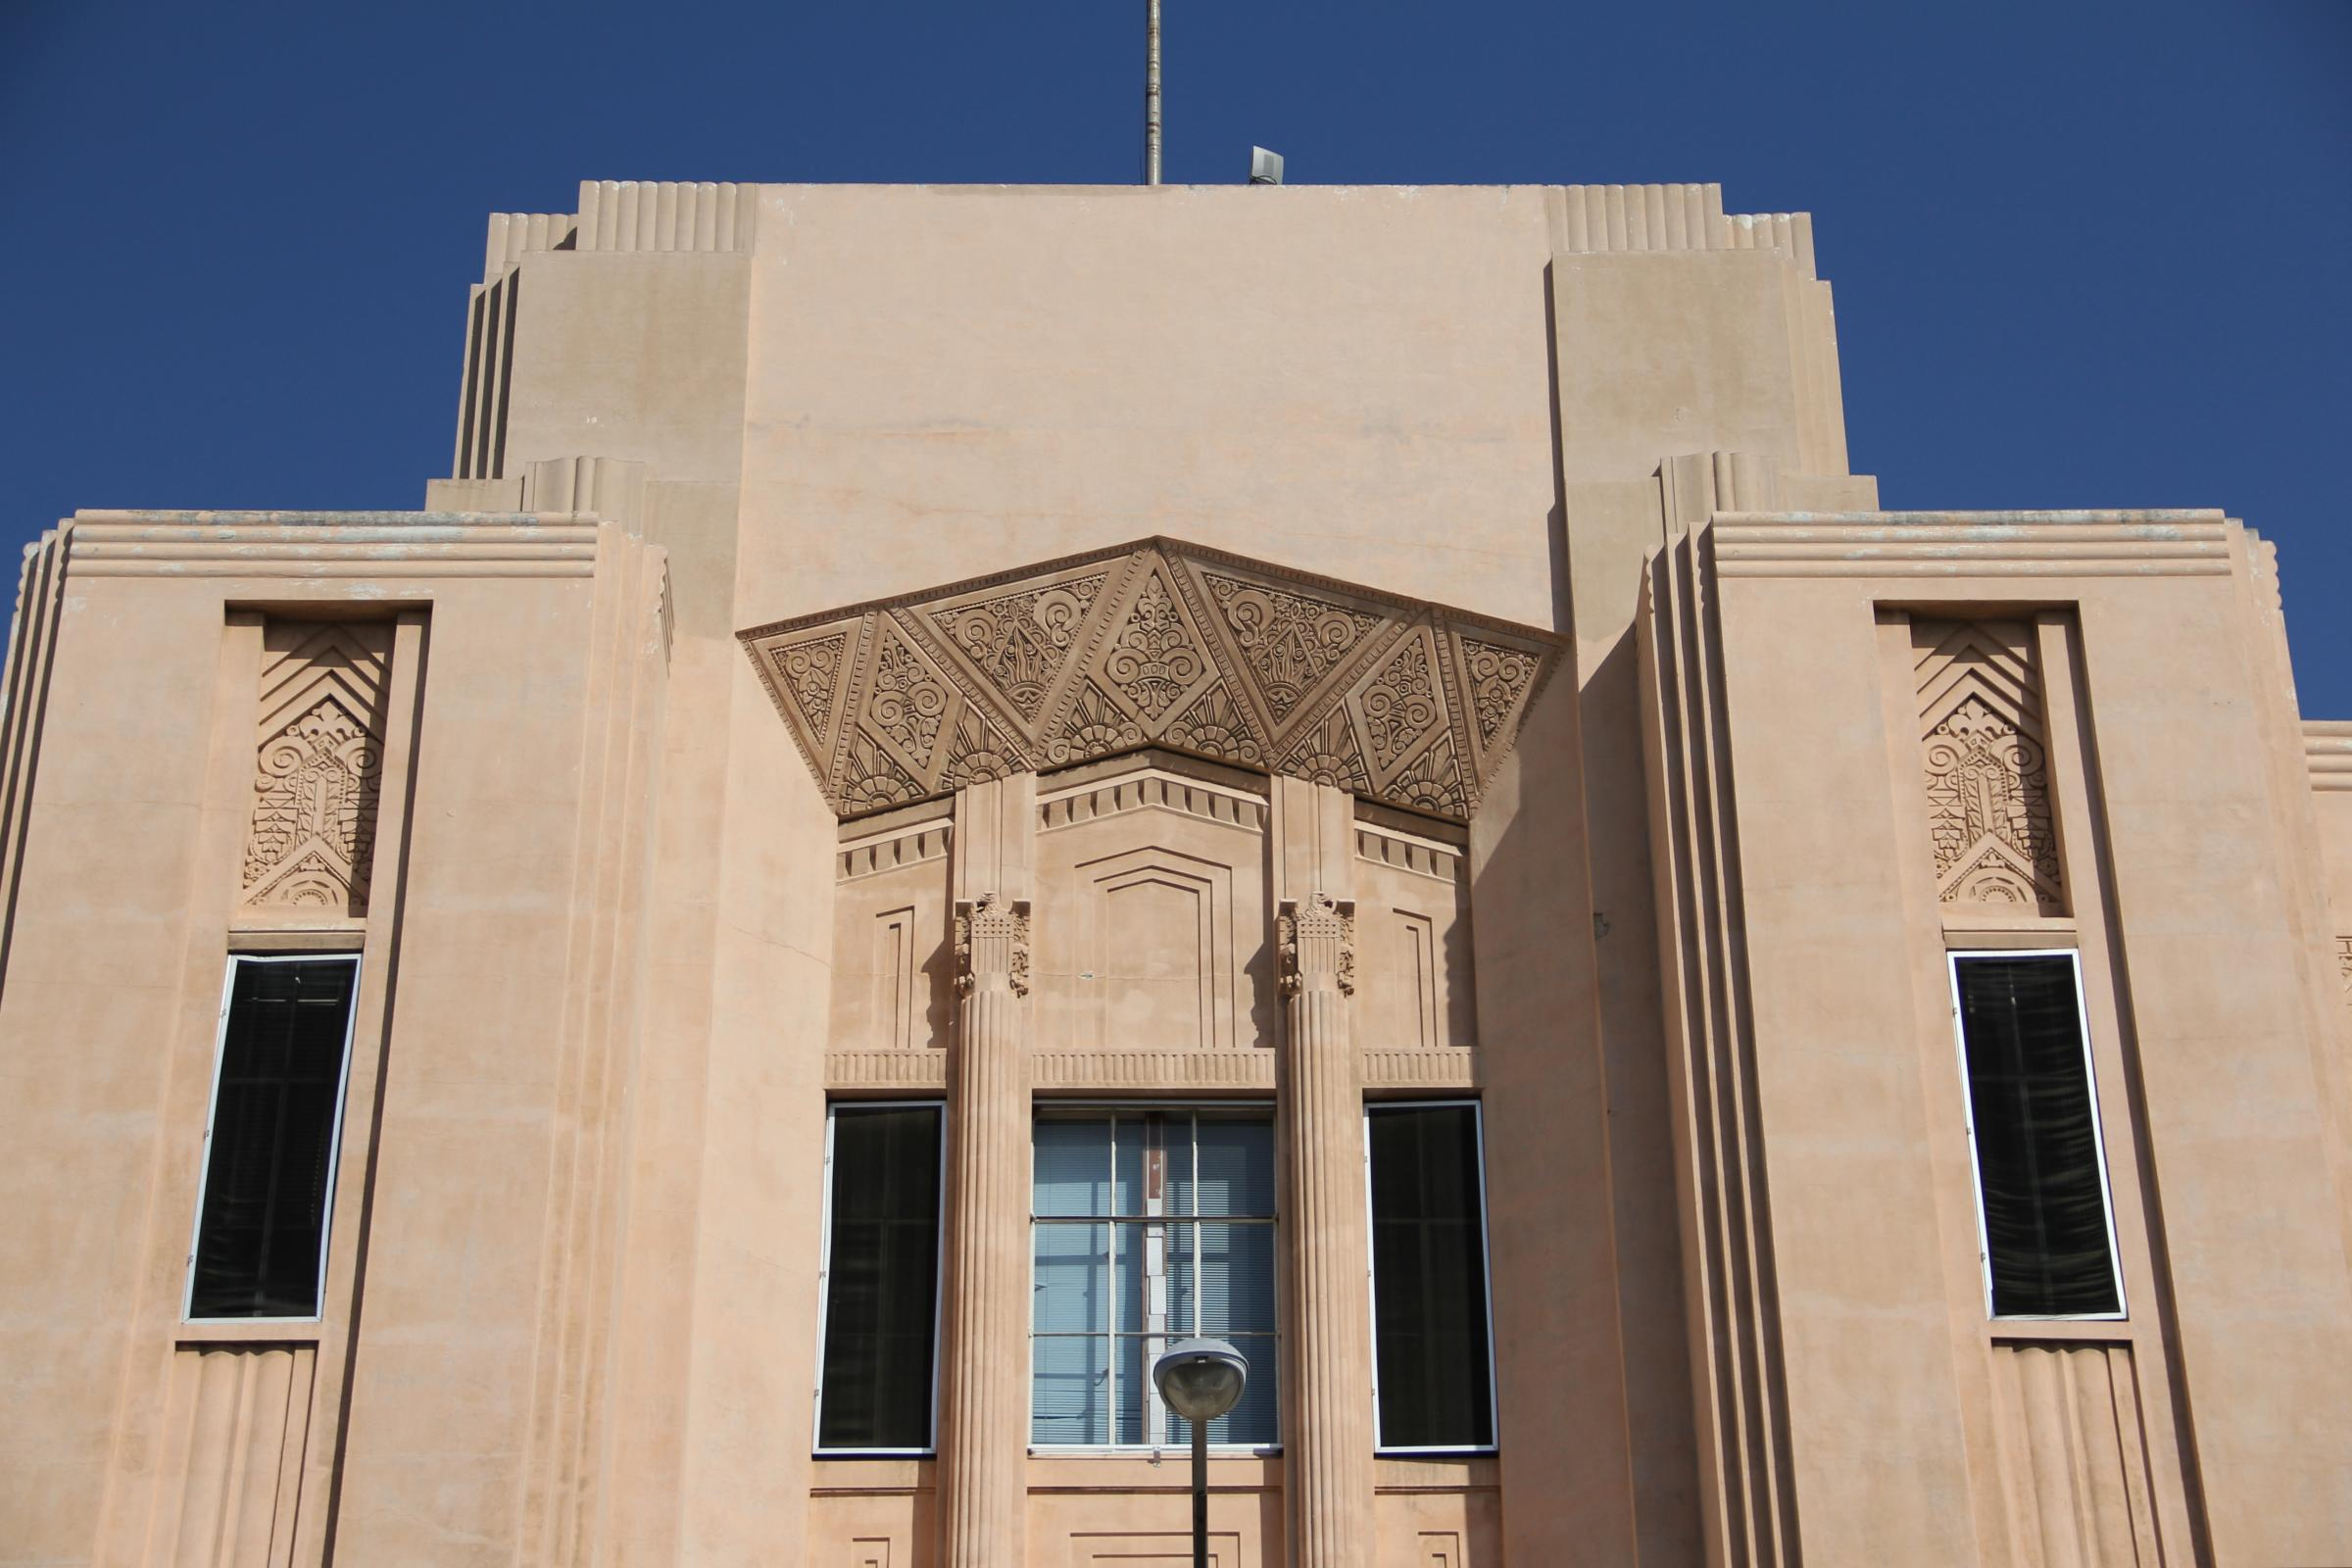 Photos art deco architecture in the san joaquin valley for The art deco